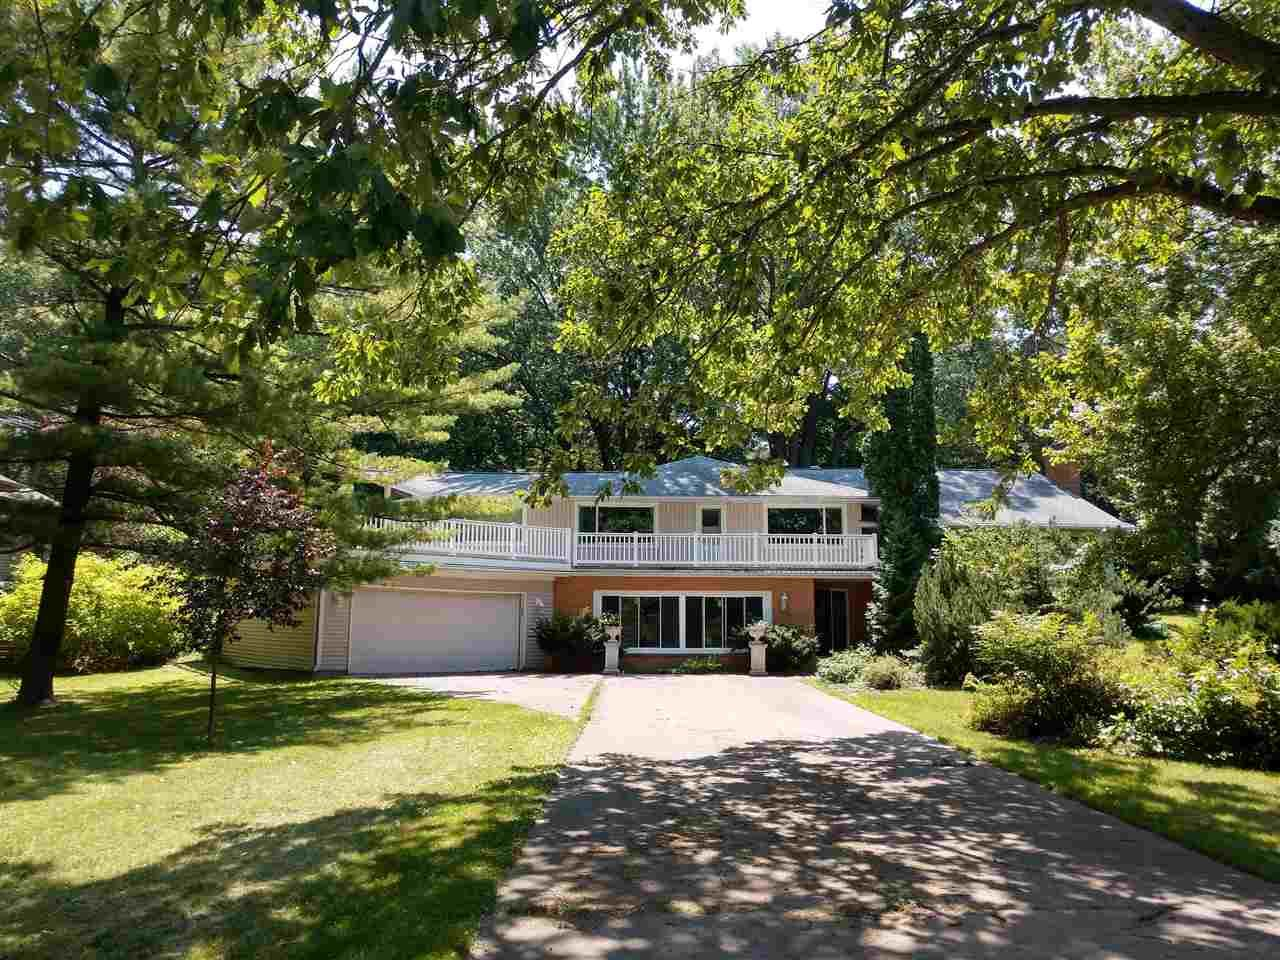 Photo for 1343 PALISADES Drive, APPLETON, WI 54915 (MLS # 50243963)